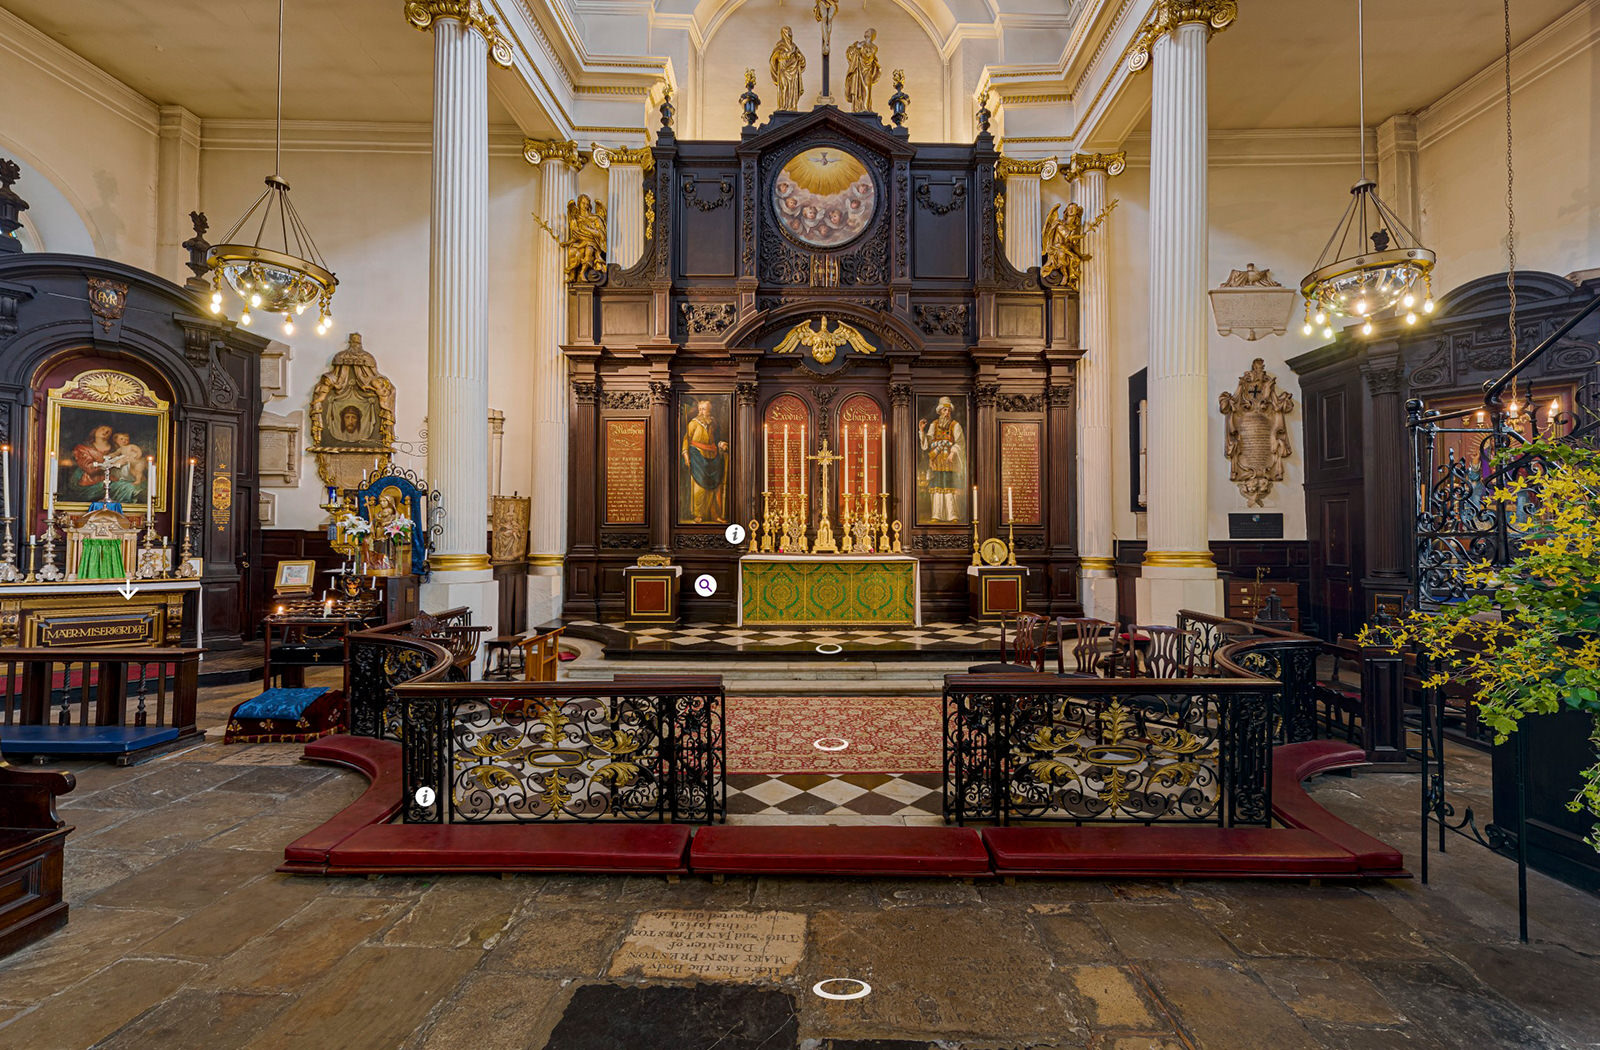 Image of the High Altar at St Magnus the Martyr taken from the church virtual tour